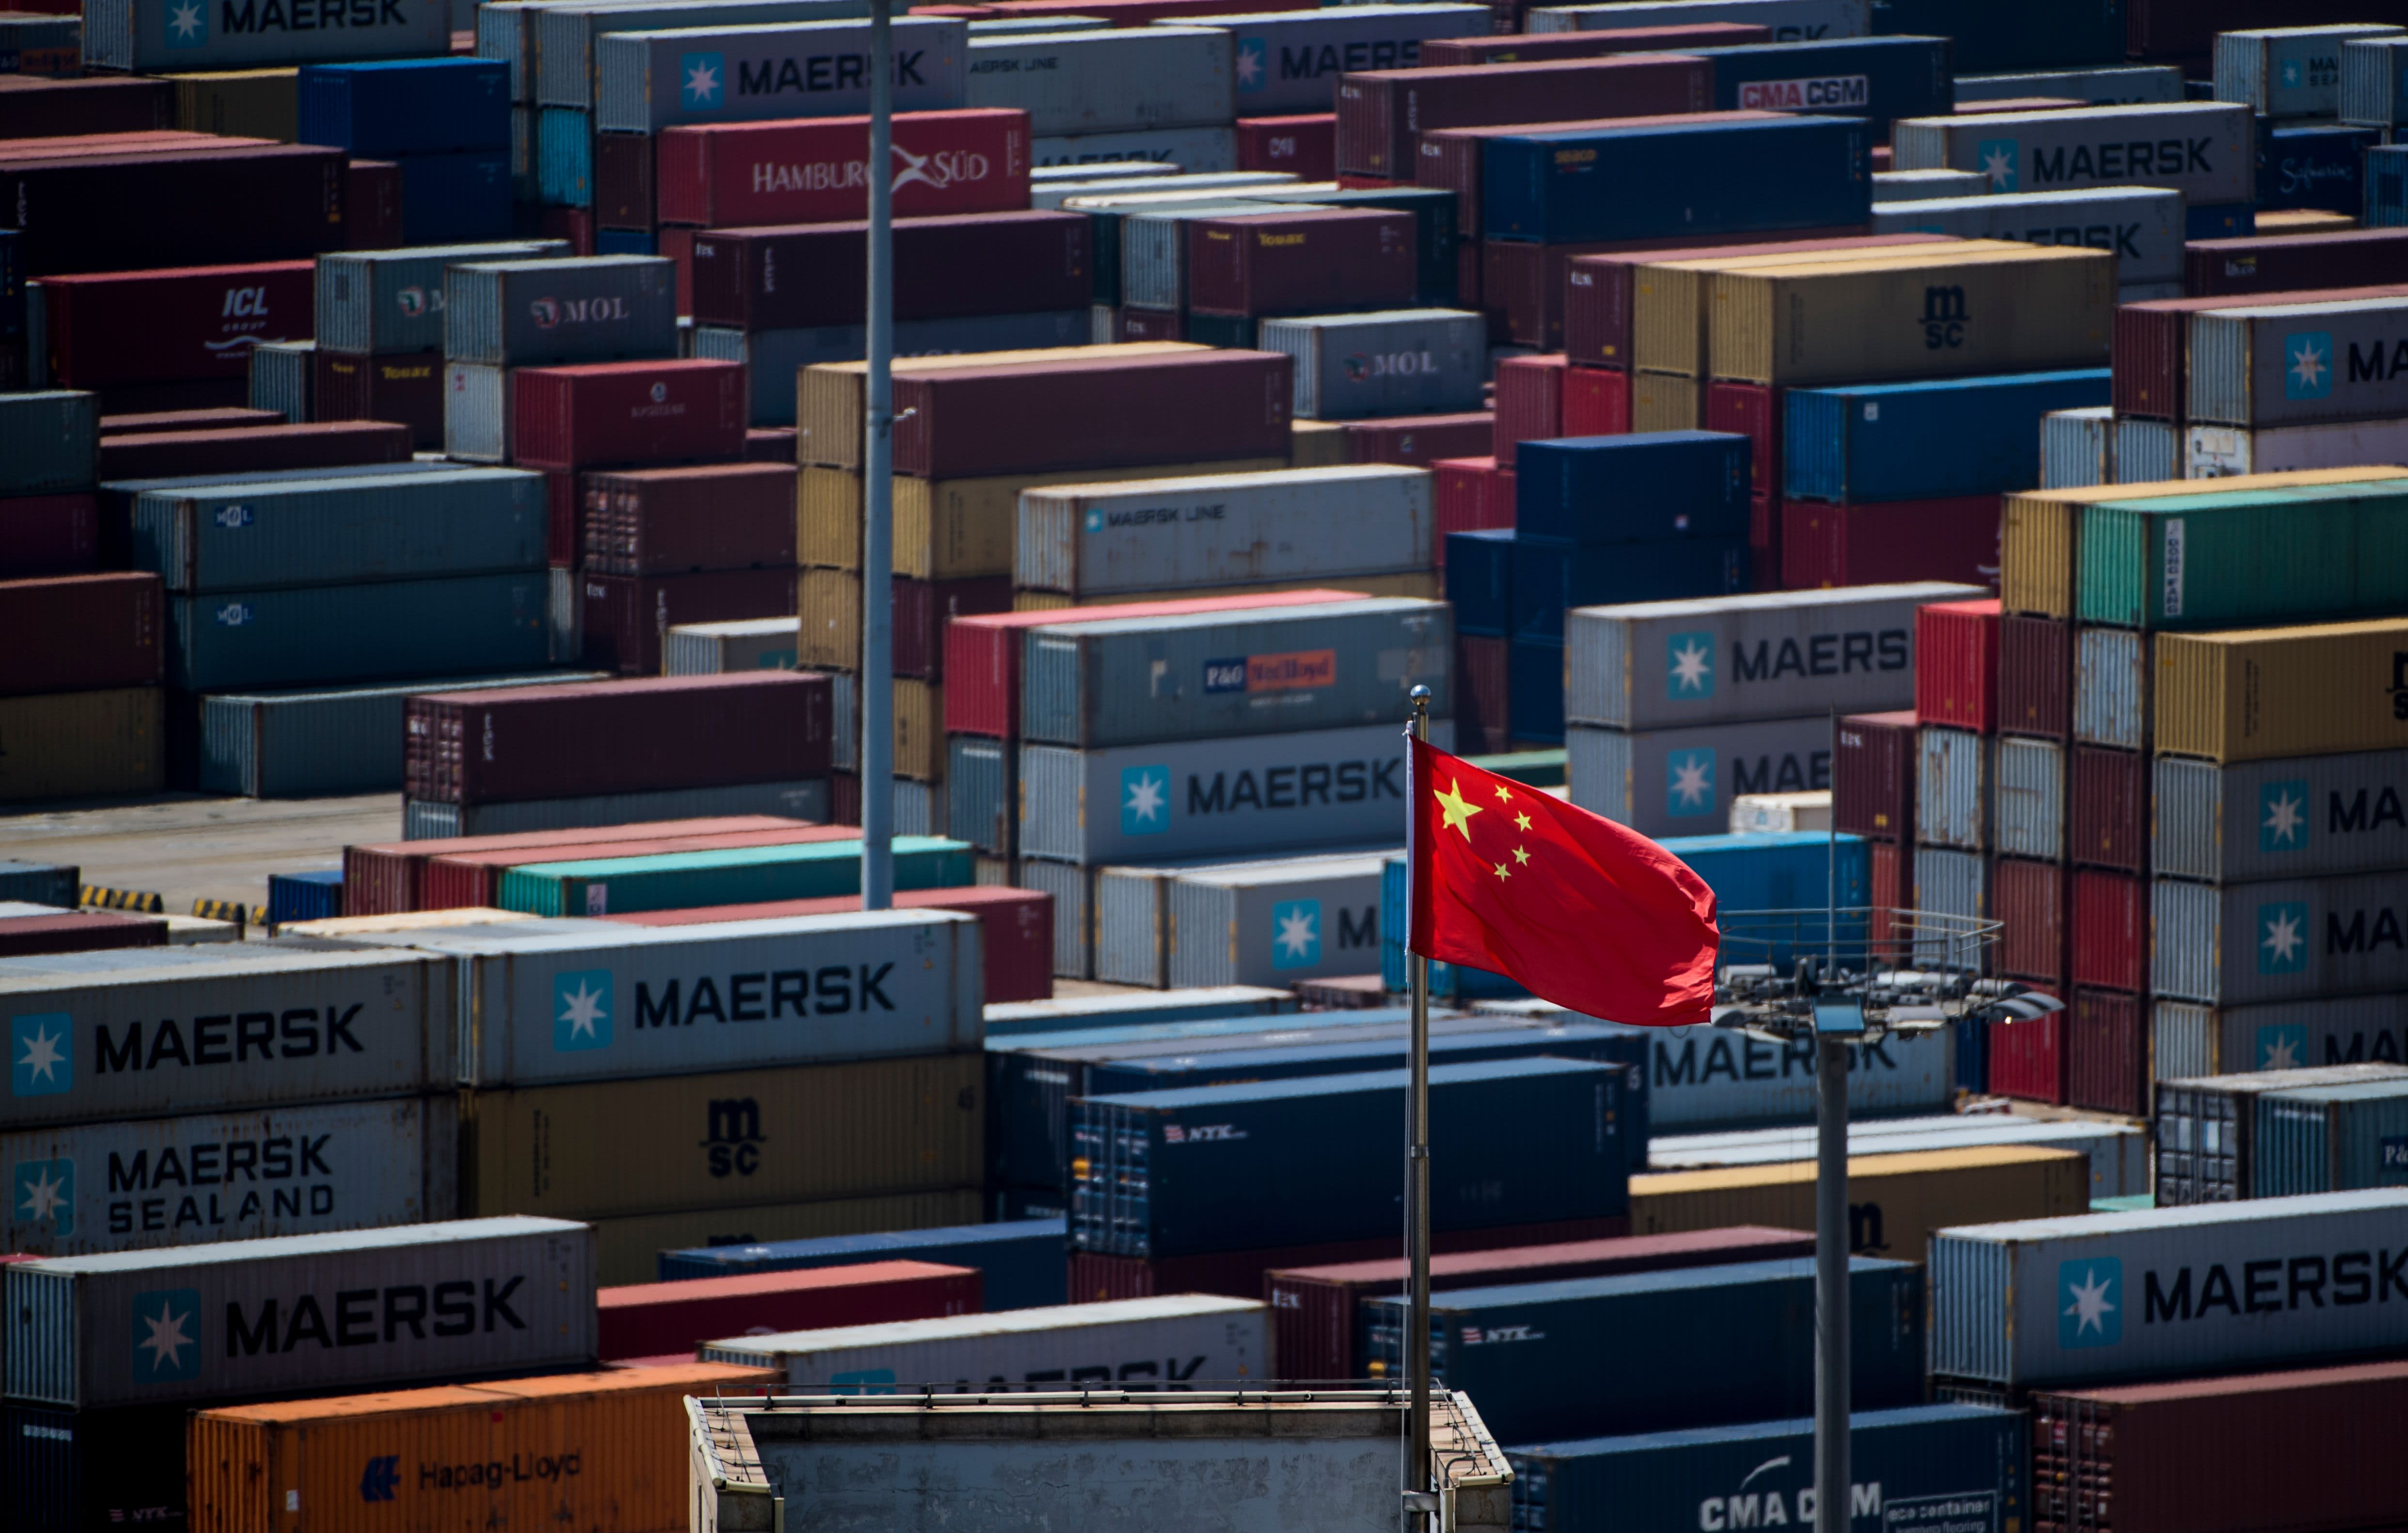 Beijing experts' latest message as trade talks stall: The US needs China